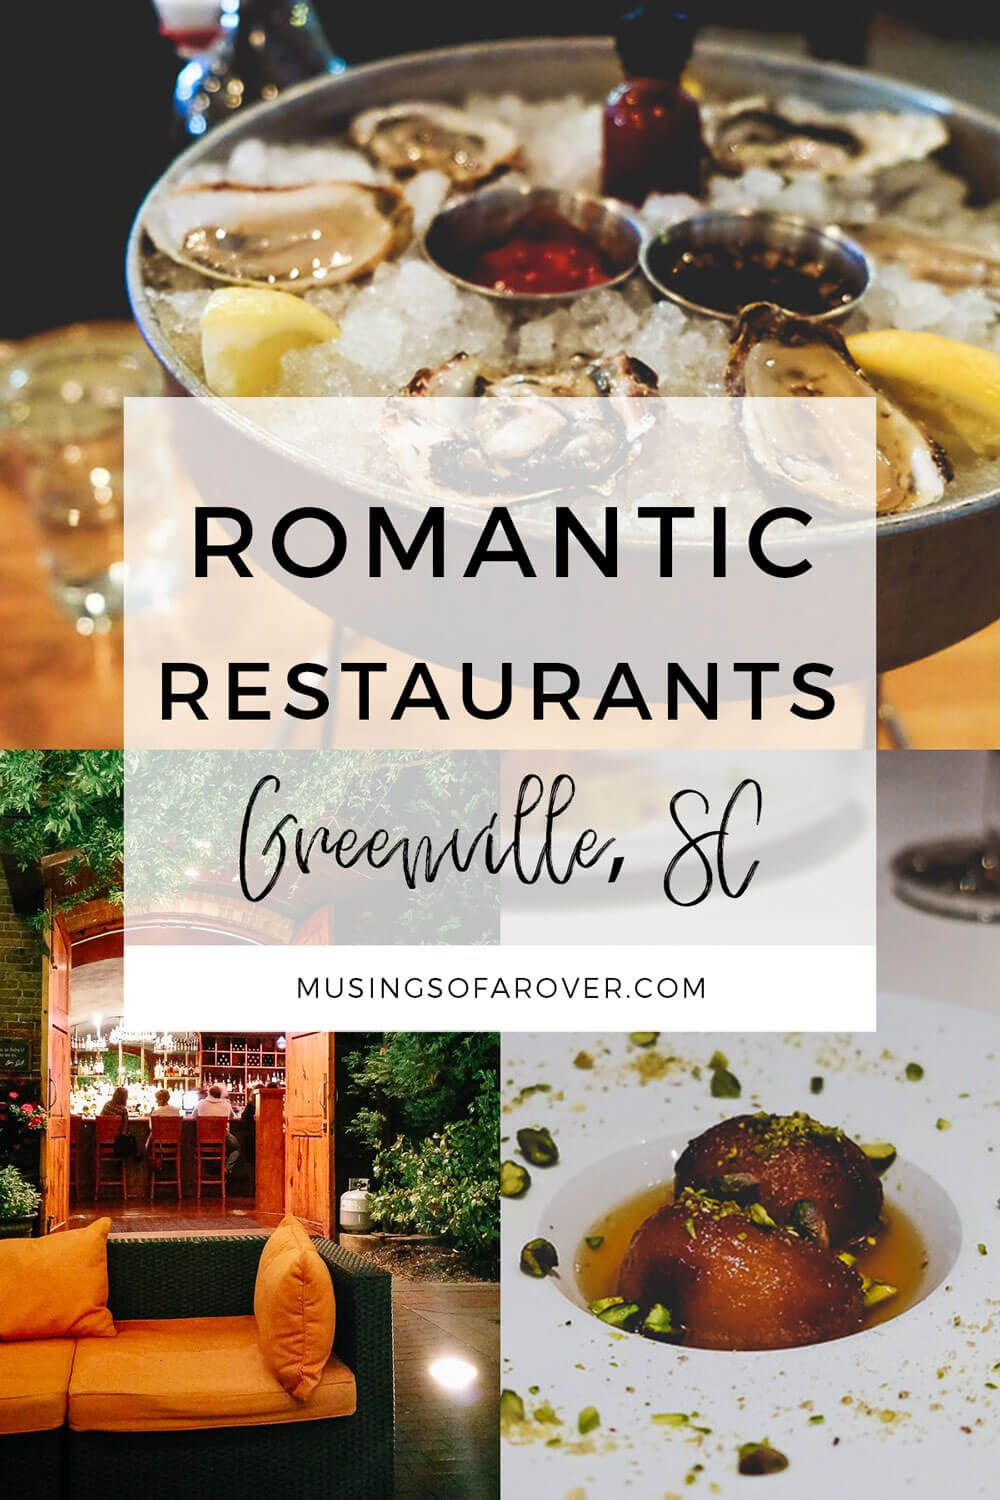 Looking for romantic restaurants in Greenville, SC? Finding a nice, classic, upscale, fancy, and romantic restaurant in Greenville can be difficult. There are so many options! But after years of eating my way through the city, these are my favorites. This is where I go for that special occasion whether it be a Friday night date or an anniversary dinner.